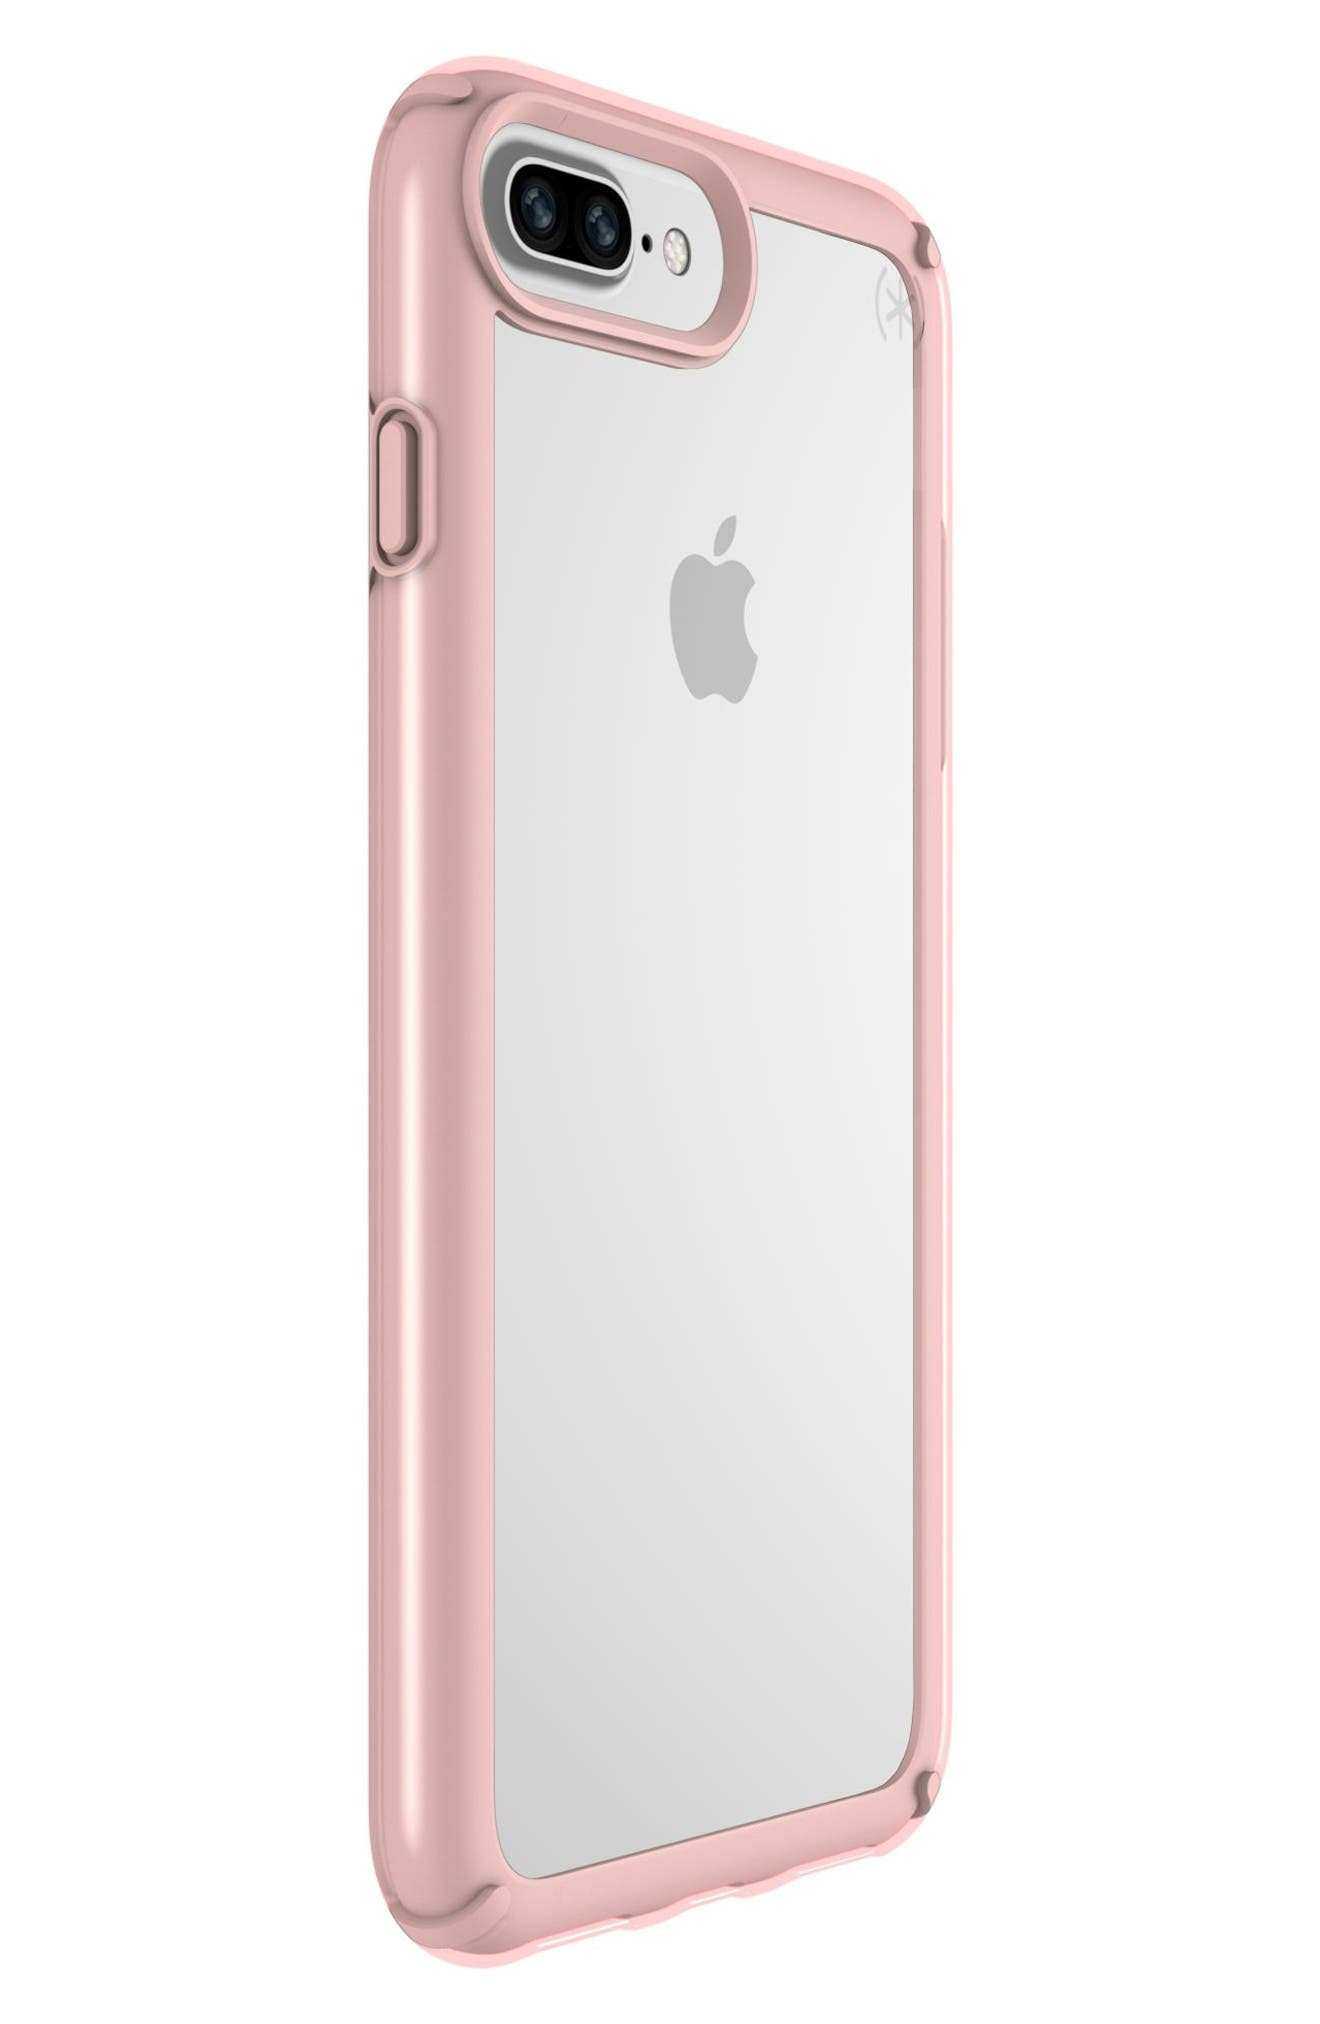 iPhone 6/6s/7/8 Plus Case,                             Alternate thumbnail 2, color,                             Clear/ Rose Gold